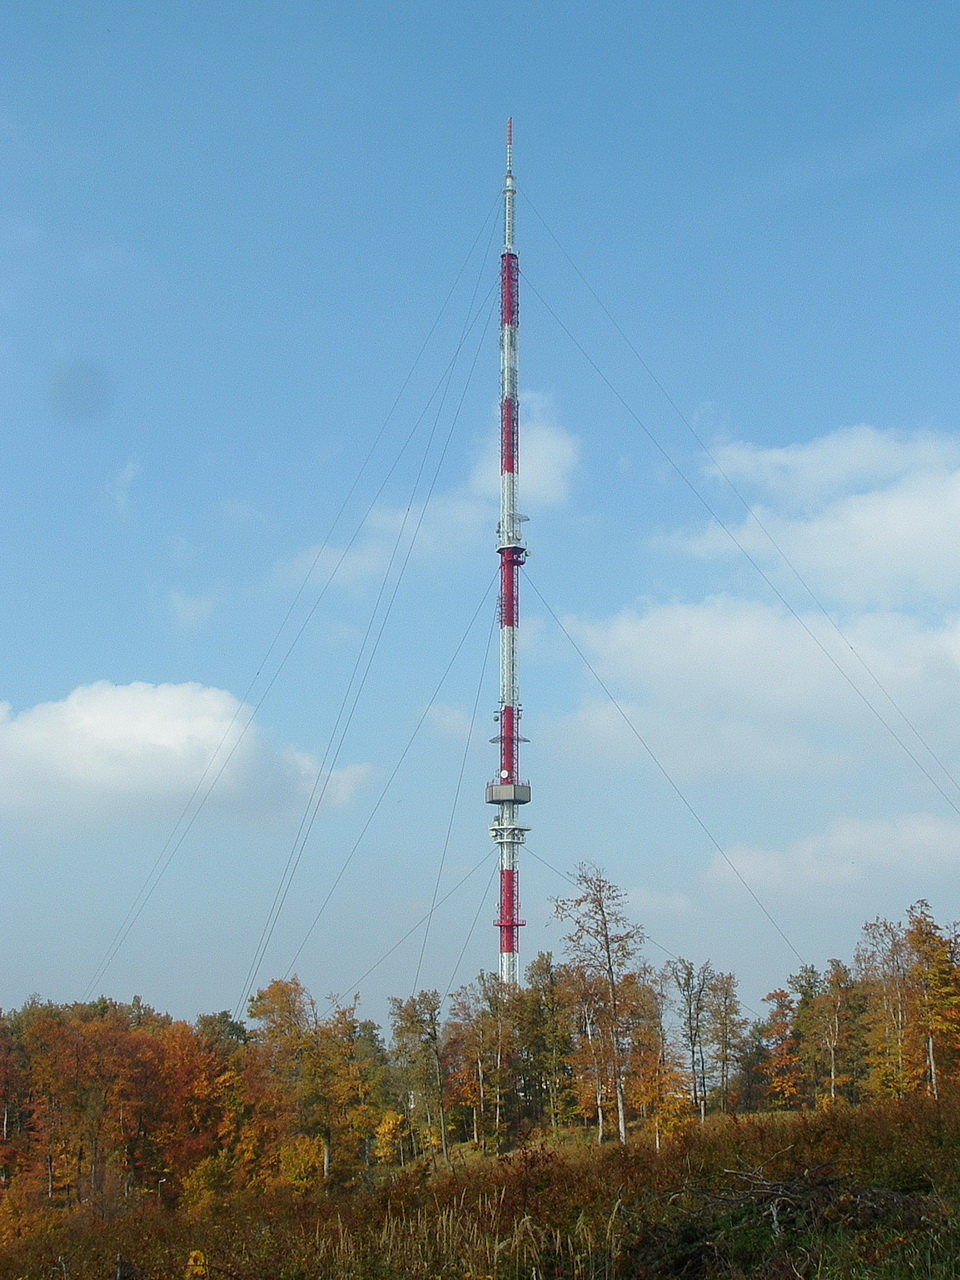 The TV broadcasting tower on the top of the mountain